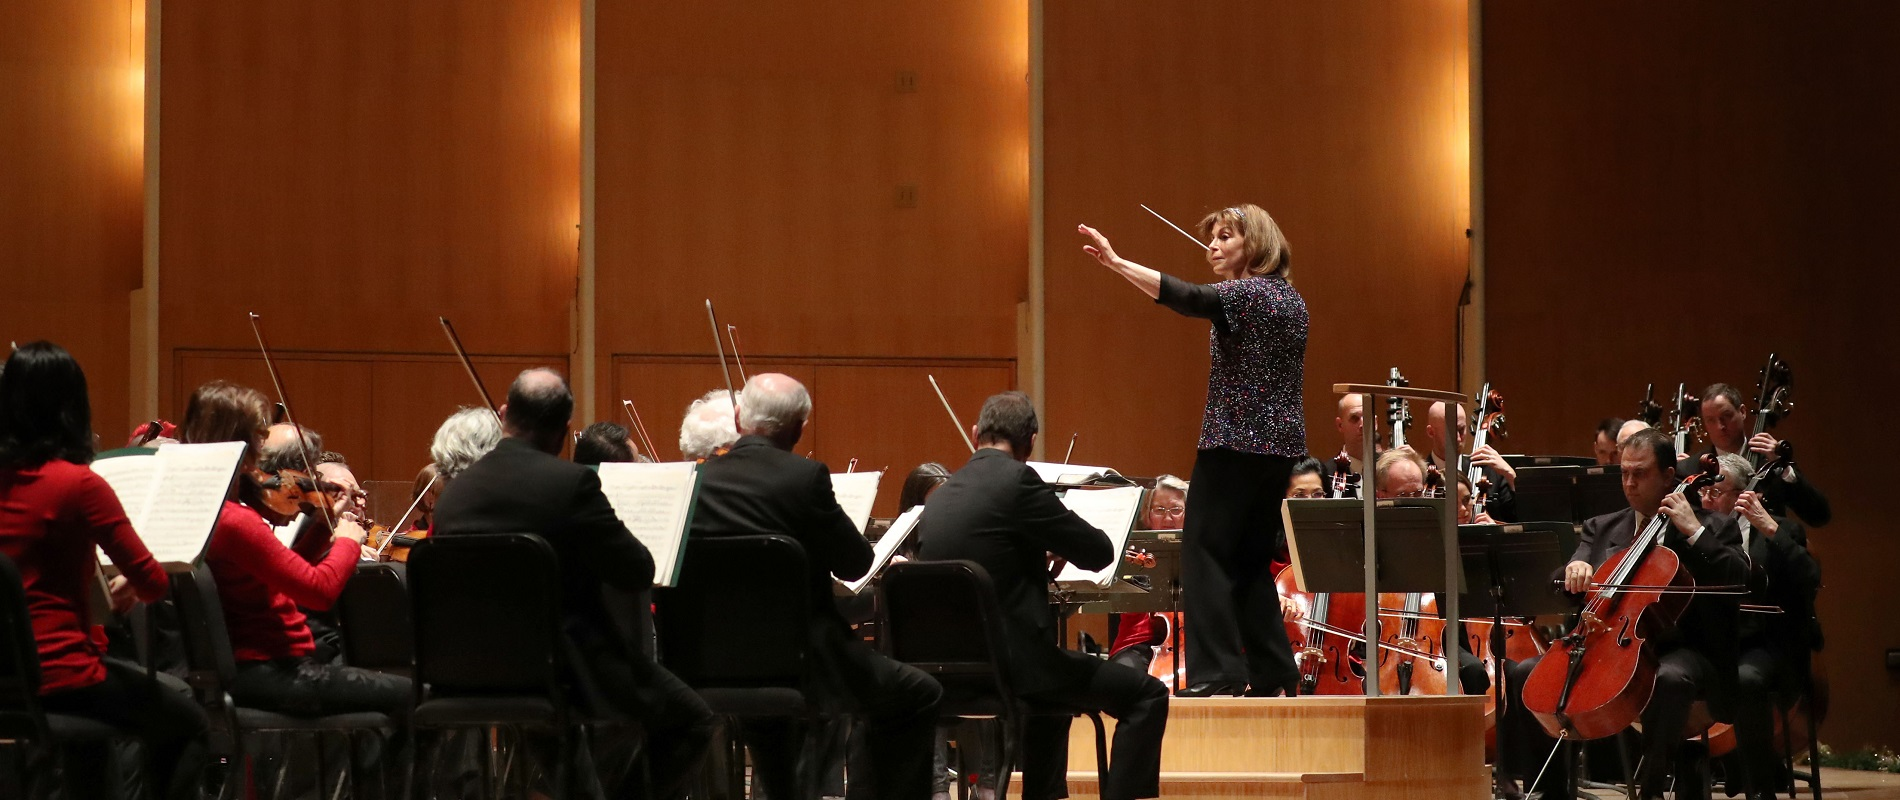 Jeff Simon writes of the Buffalo Philharmonic's new record: 'Both the performances by the BPO and the sound quality of the disc are superb.' (Sharon Cantillon/Buffalo News)